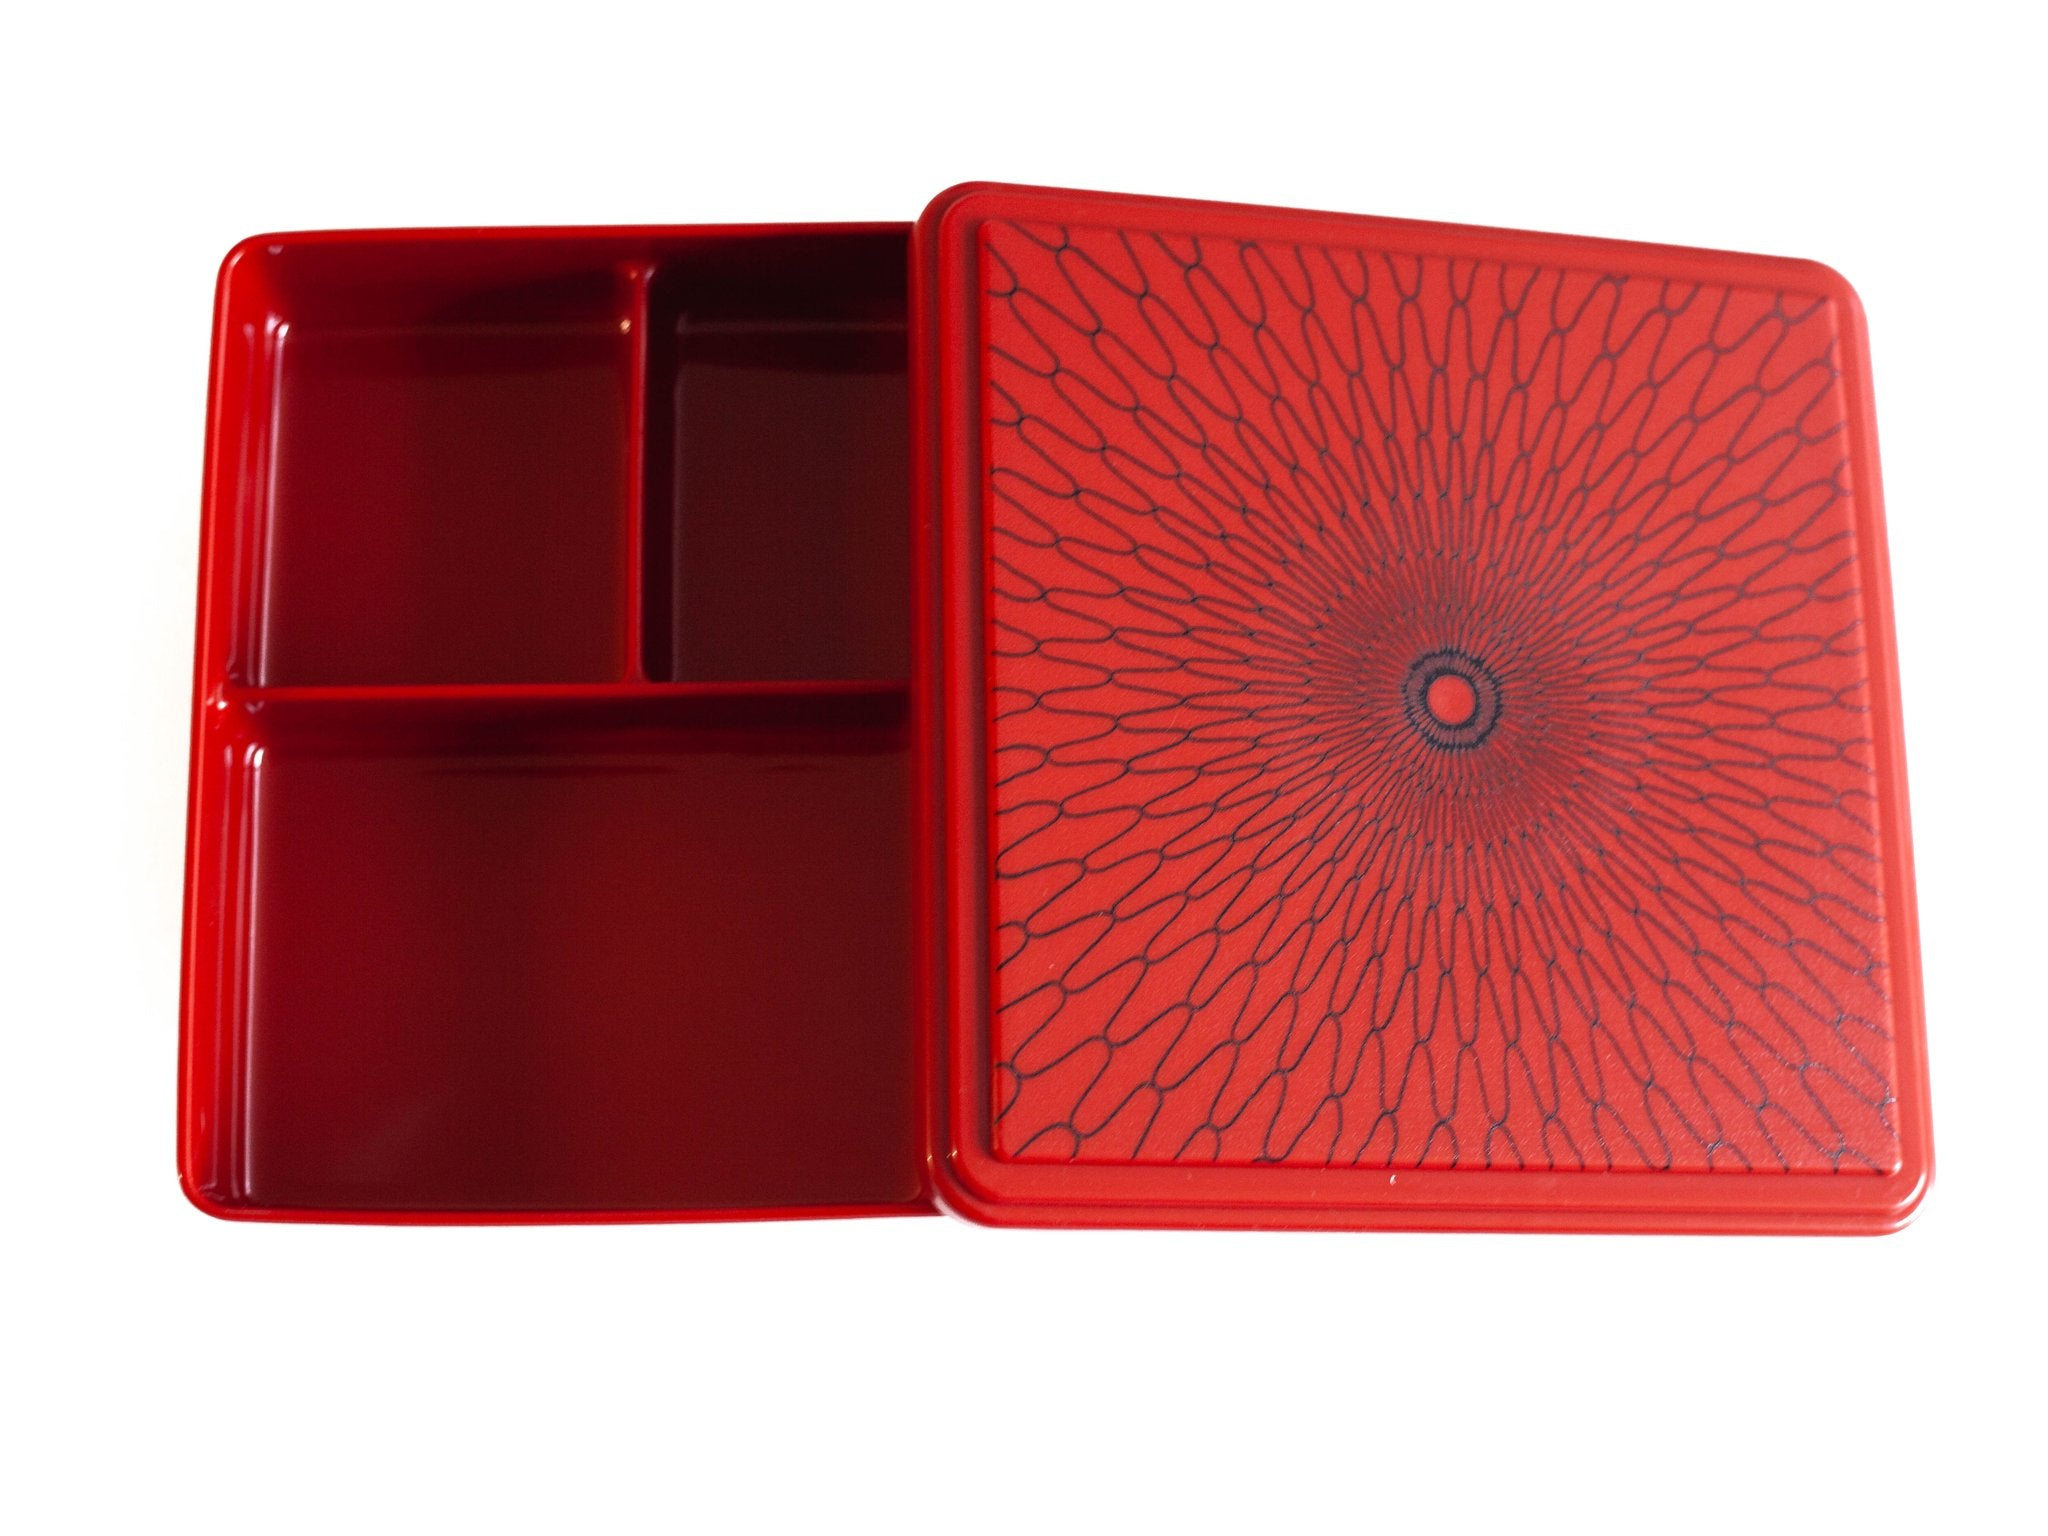 Shokado Bento Box | Rosette by Takagi - Bento&co Japanese Bento Lunch Boxes and Kitchenware Specialists